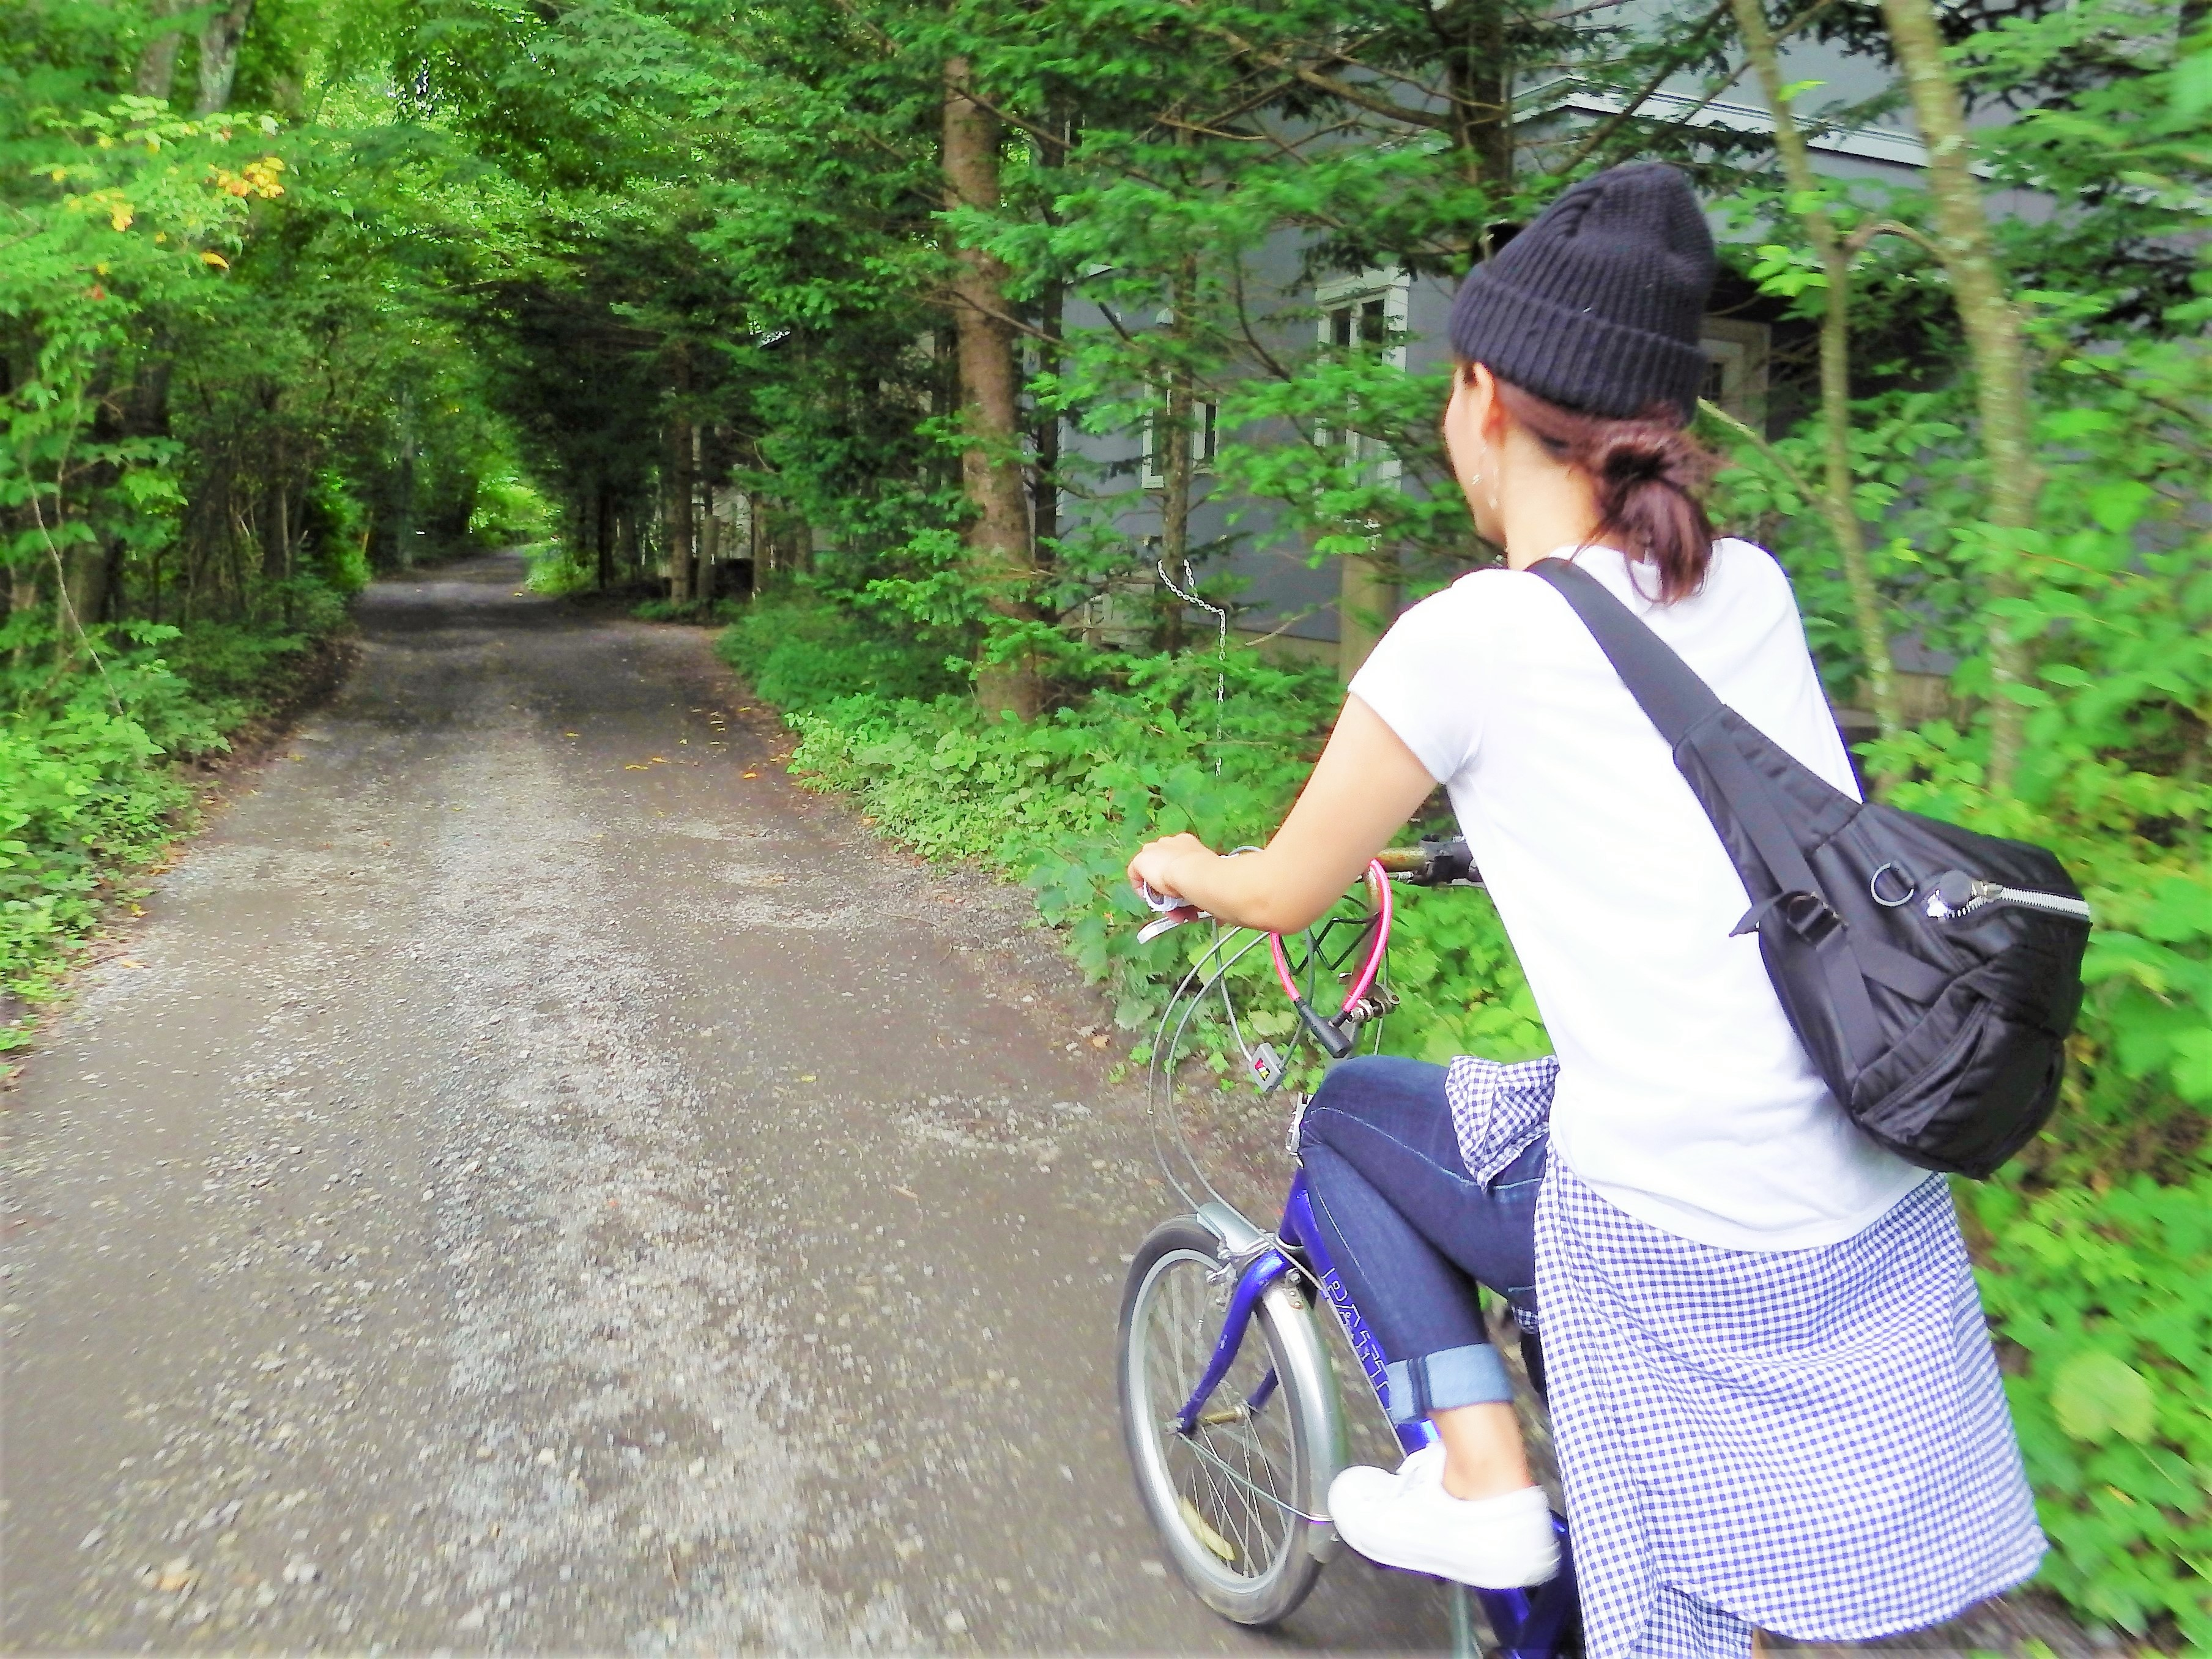 Go slow and experience rural Japan